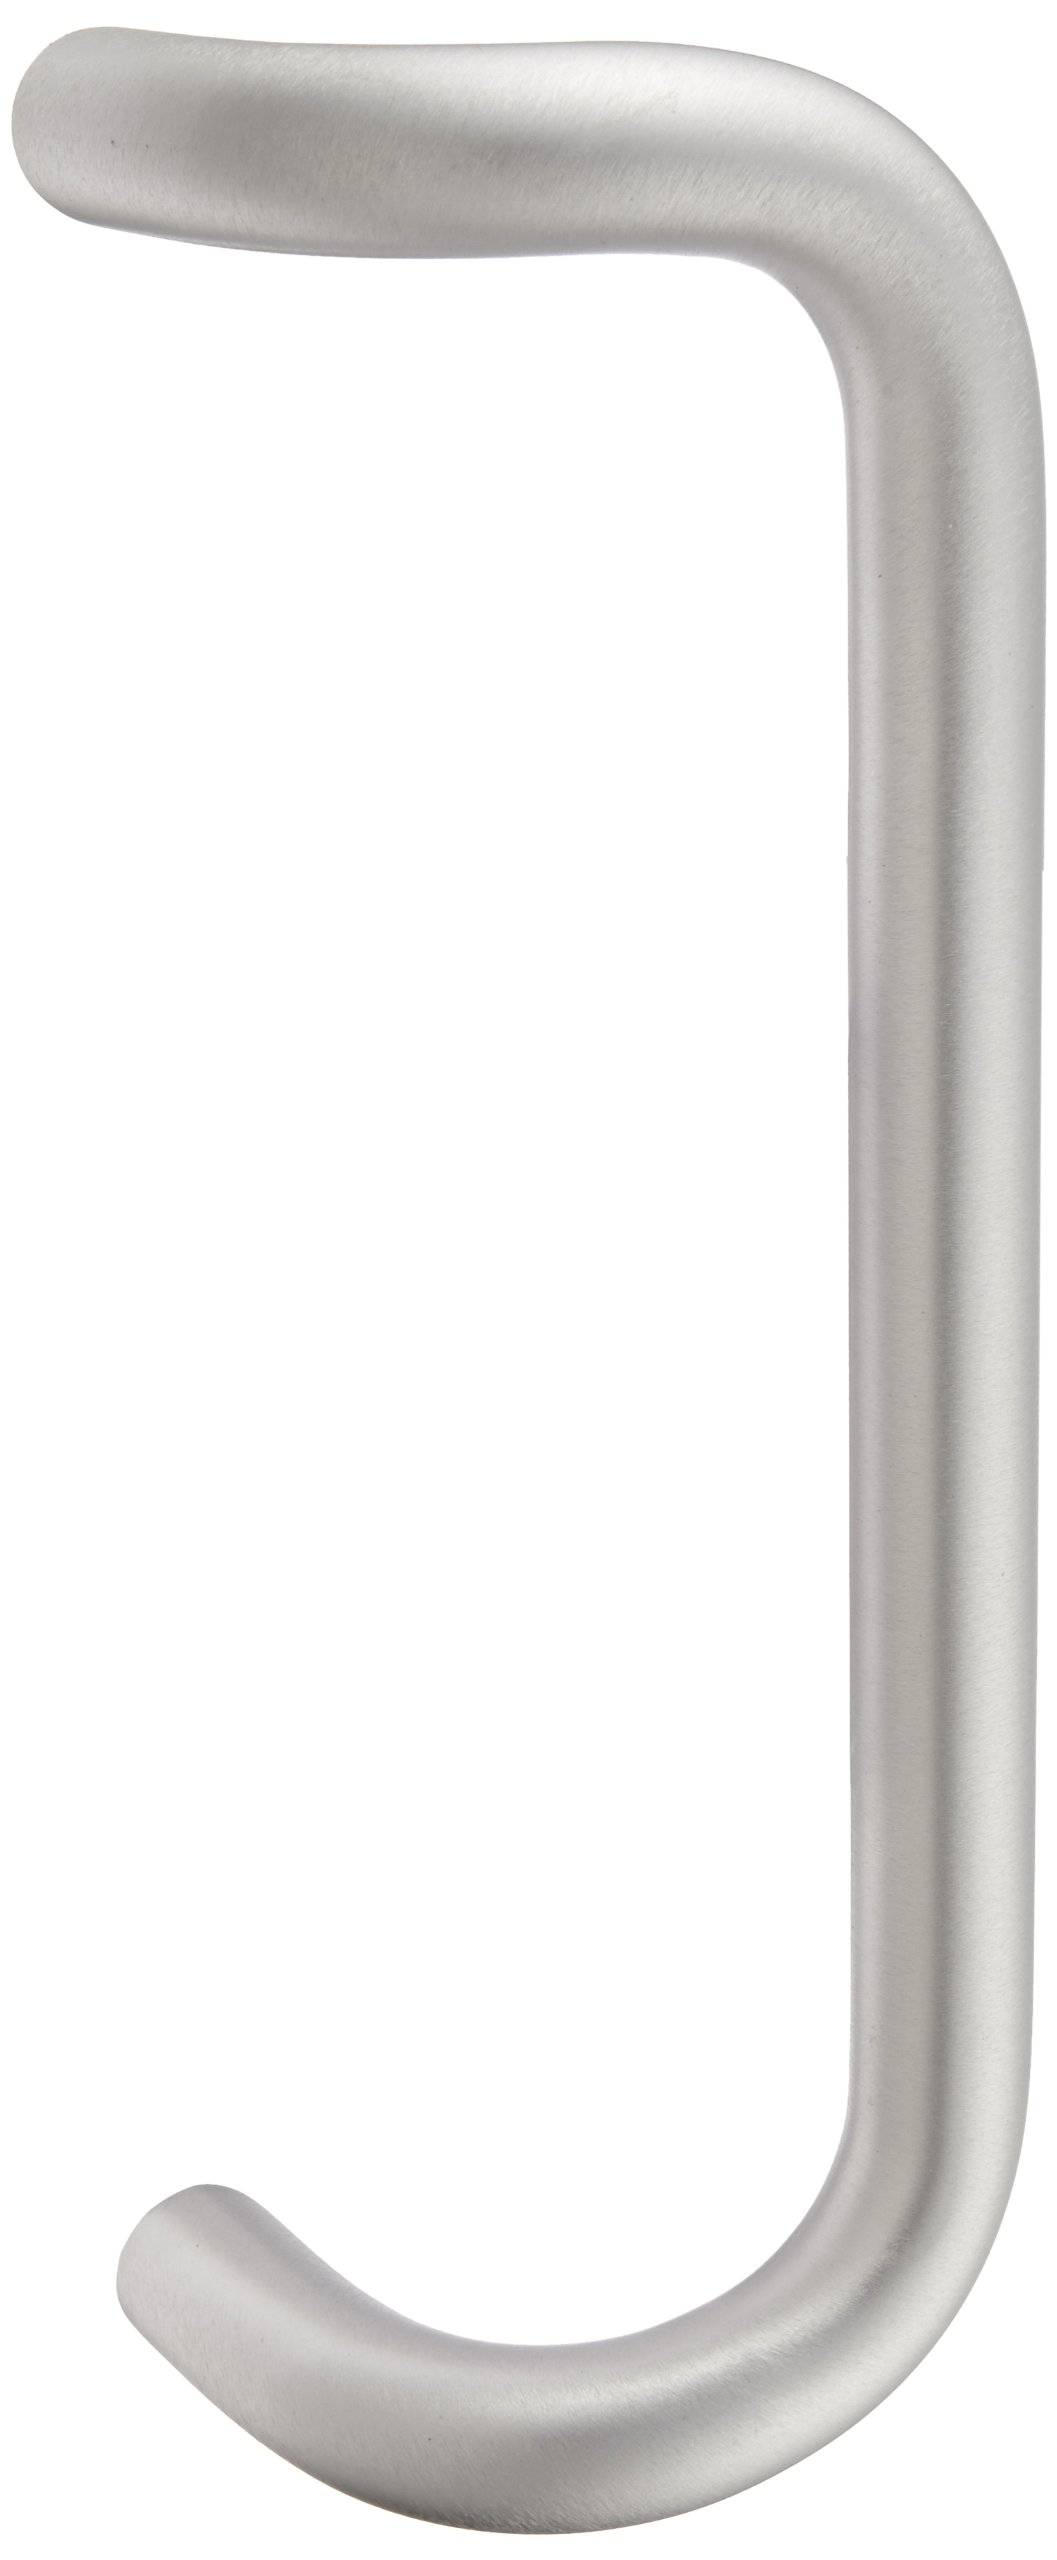 Rockwood BF158.28 Aluminum 90-Degree Offset Door Pull, 1'' Diameter x 12'' Center-to-Center, Through Bolt Mounting for 1-3/4'' Door, Clear Anodized Finish